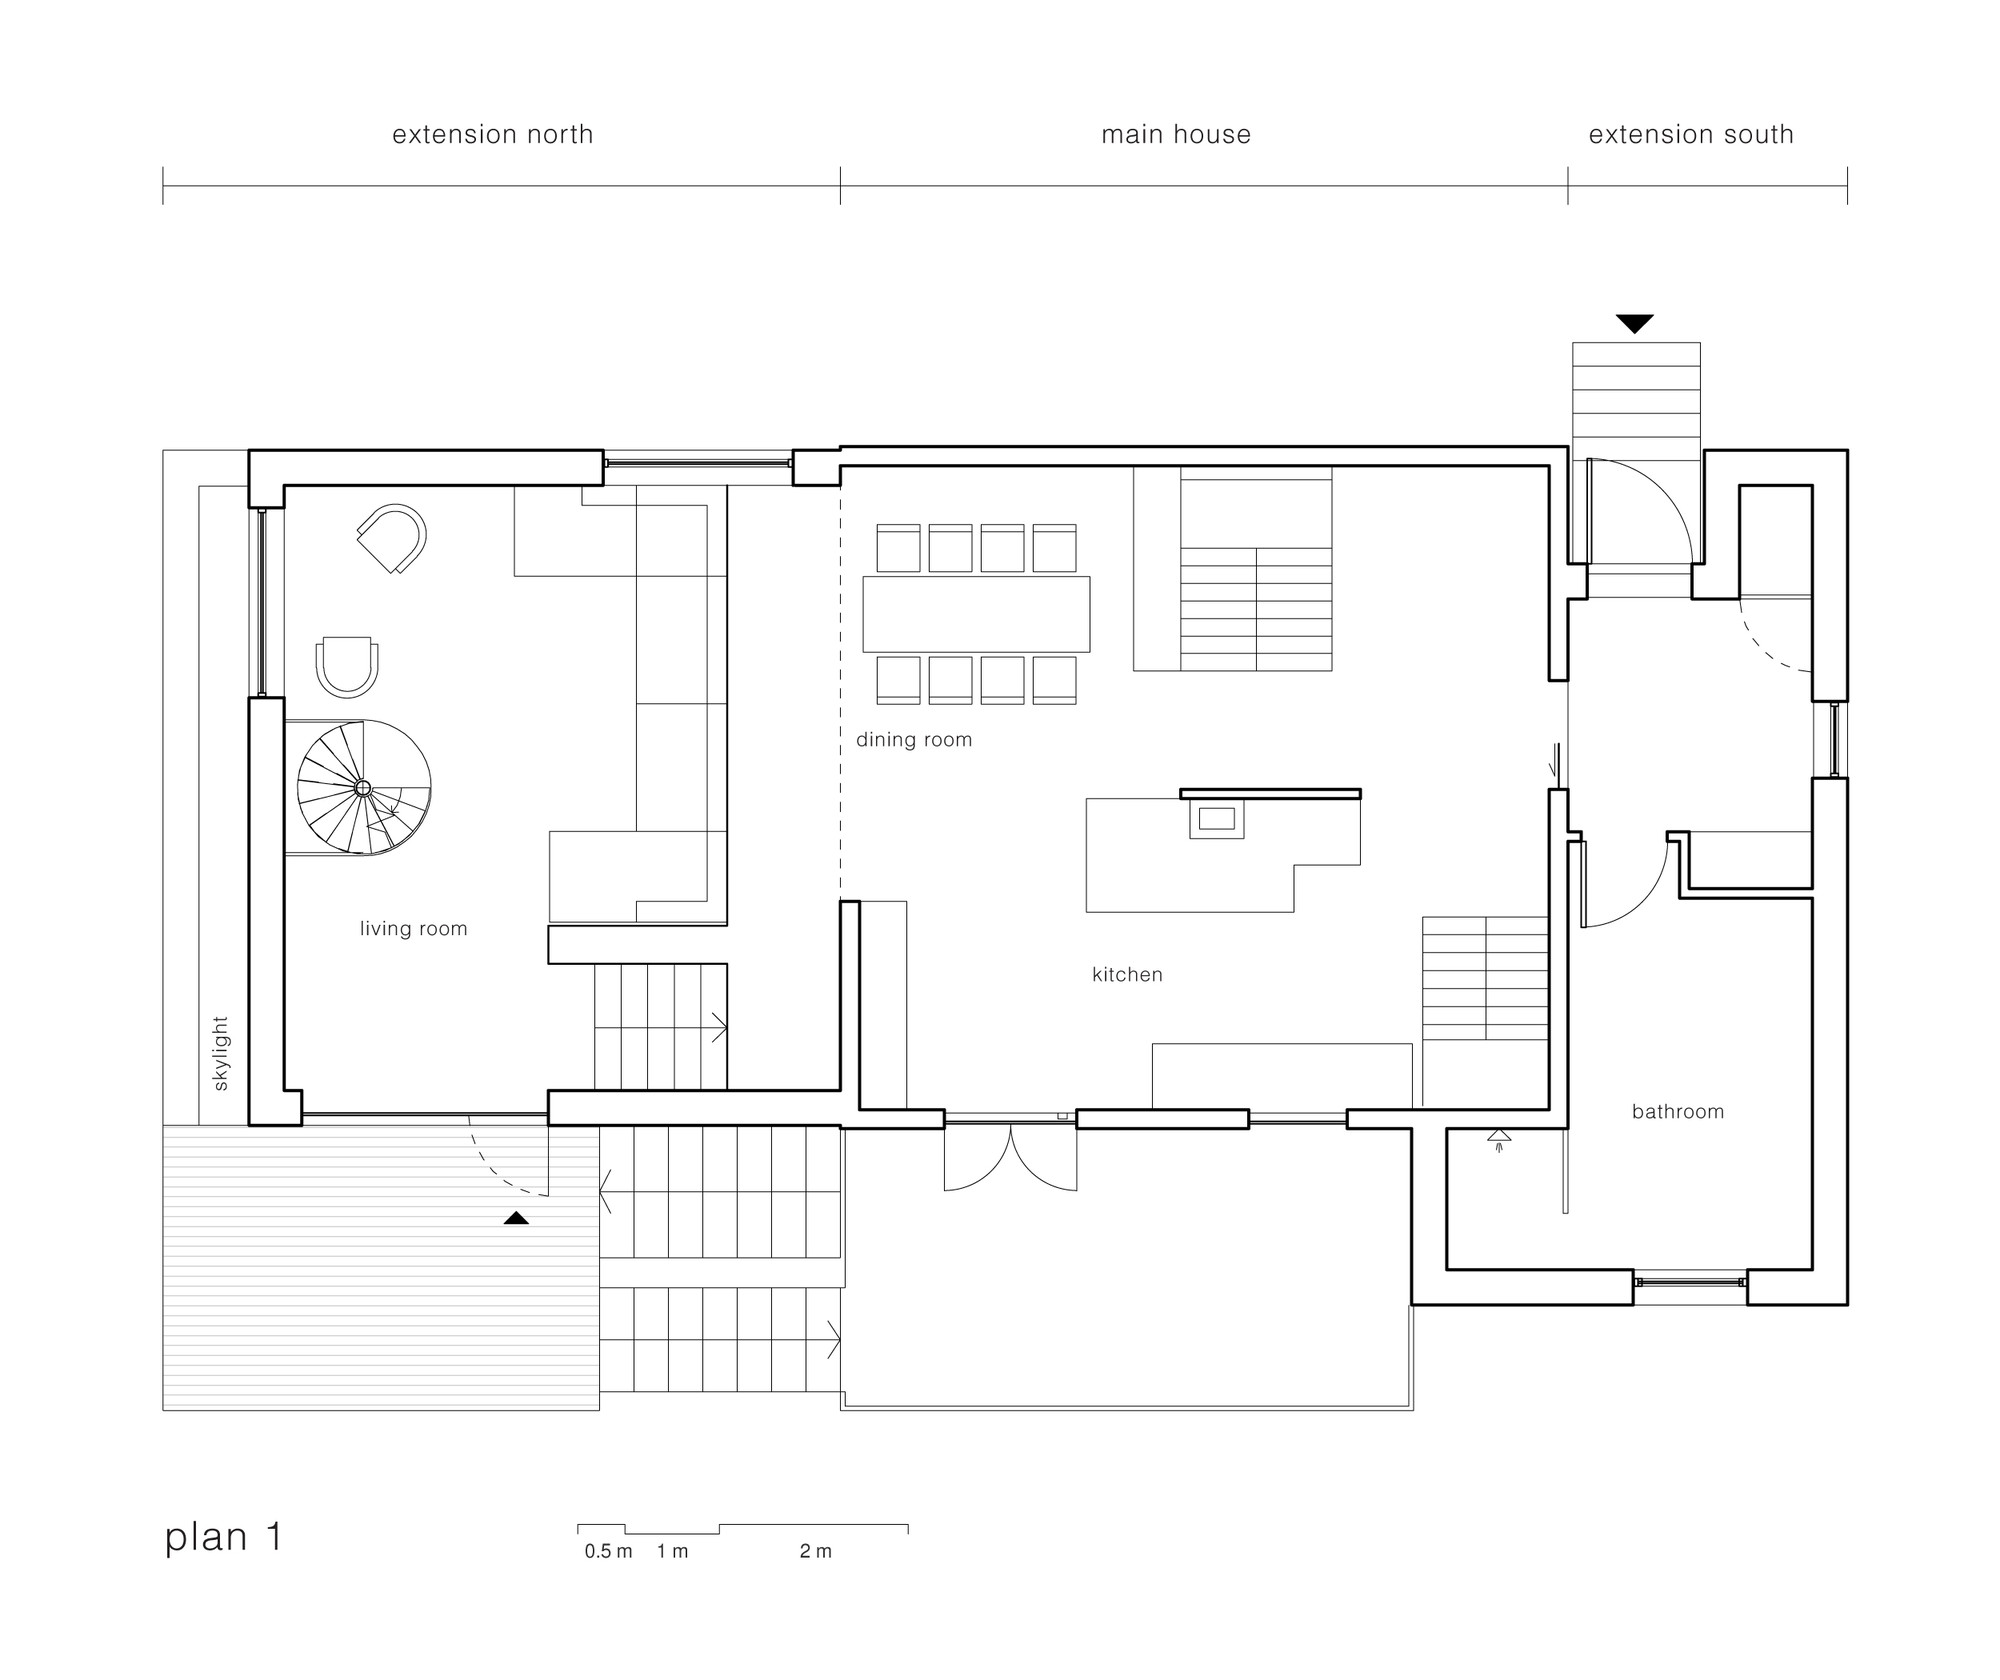 feisteinveien rever drage architects archdaily floor plan